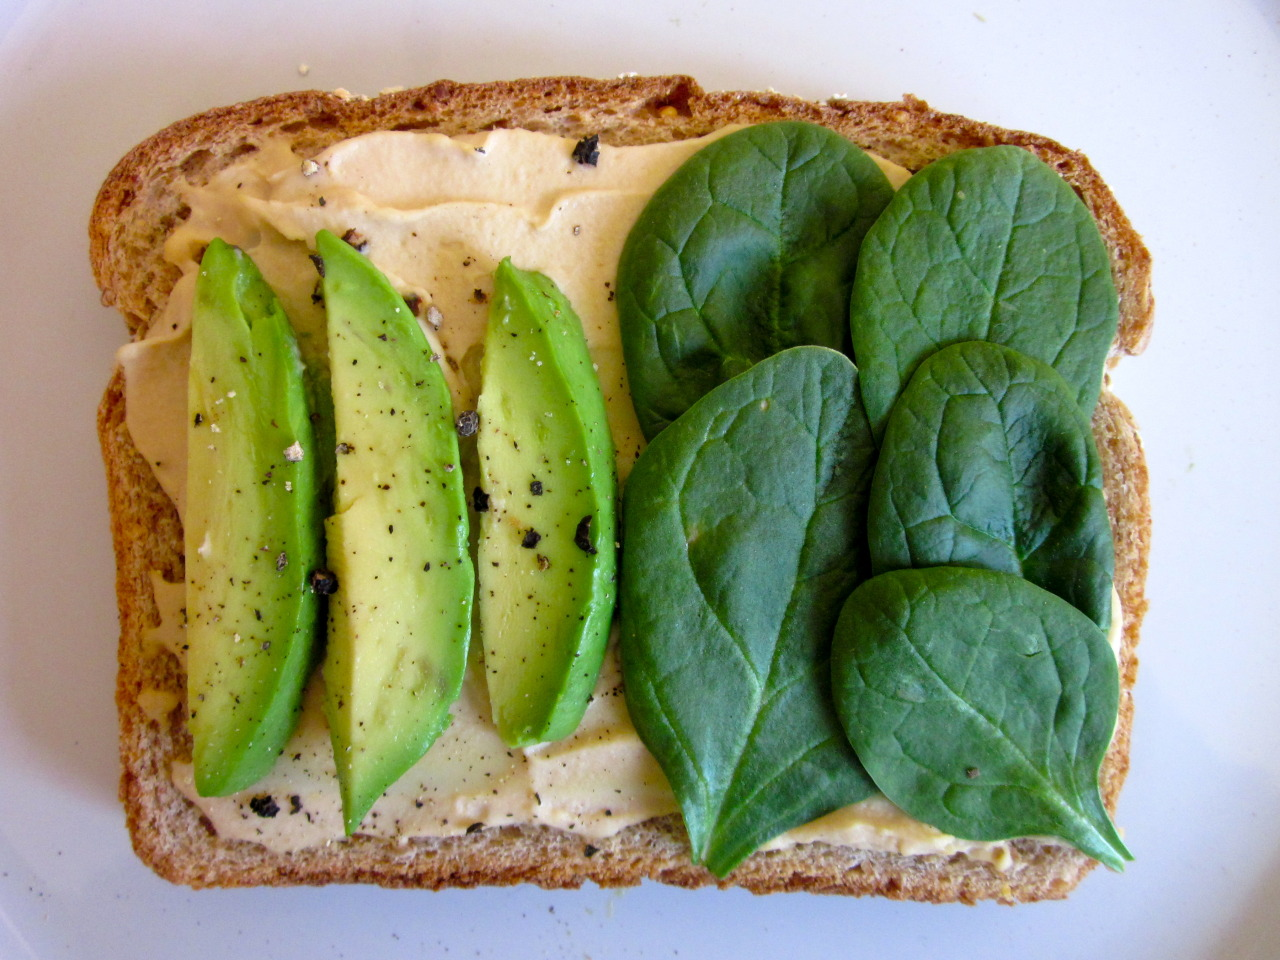 beautifulfoodisamust:  Toast with hummus, spinach, avocado and cracked pepper  This just looks/sounds super good. I WANT IT!